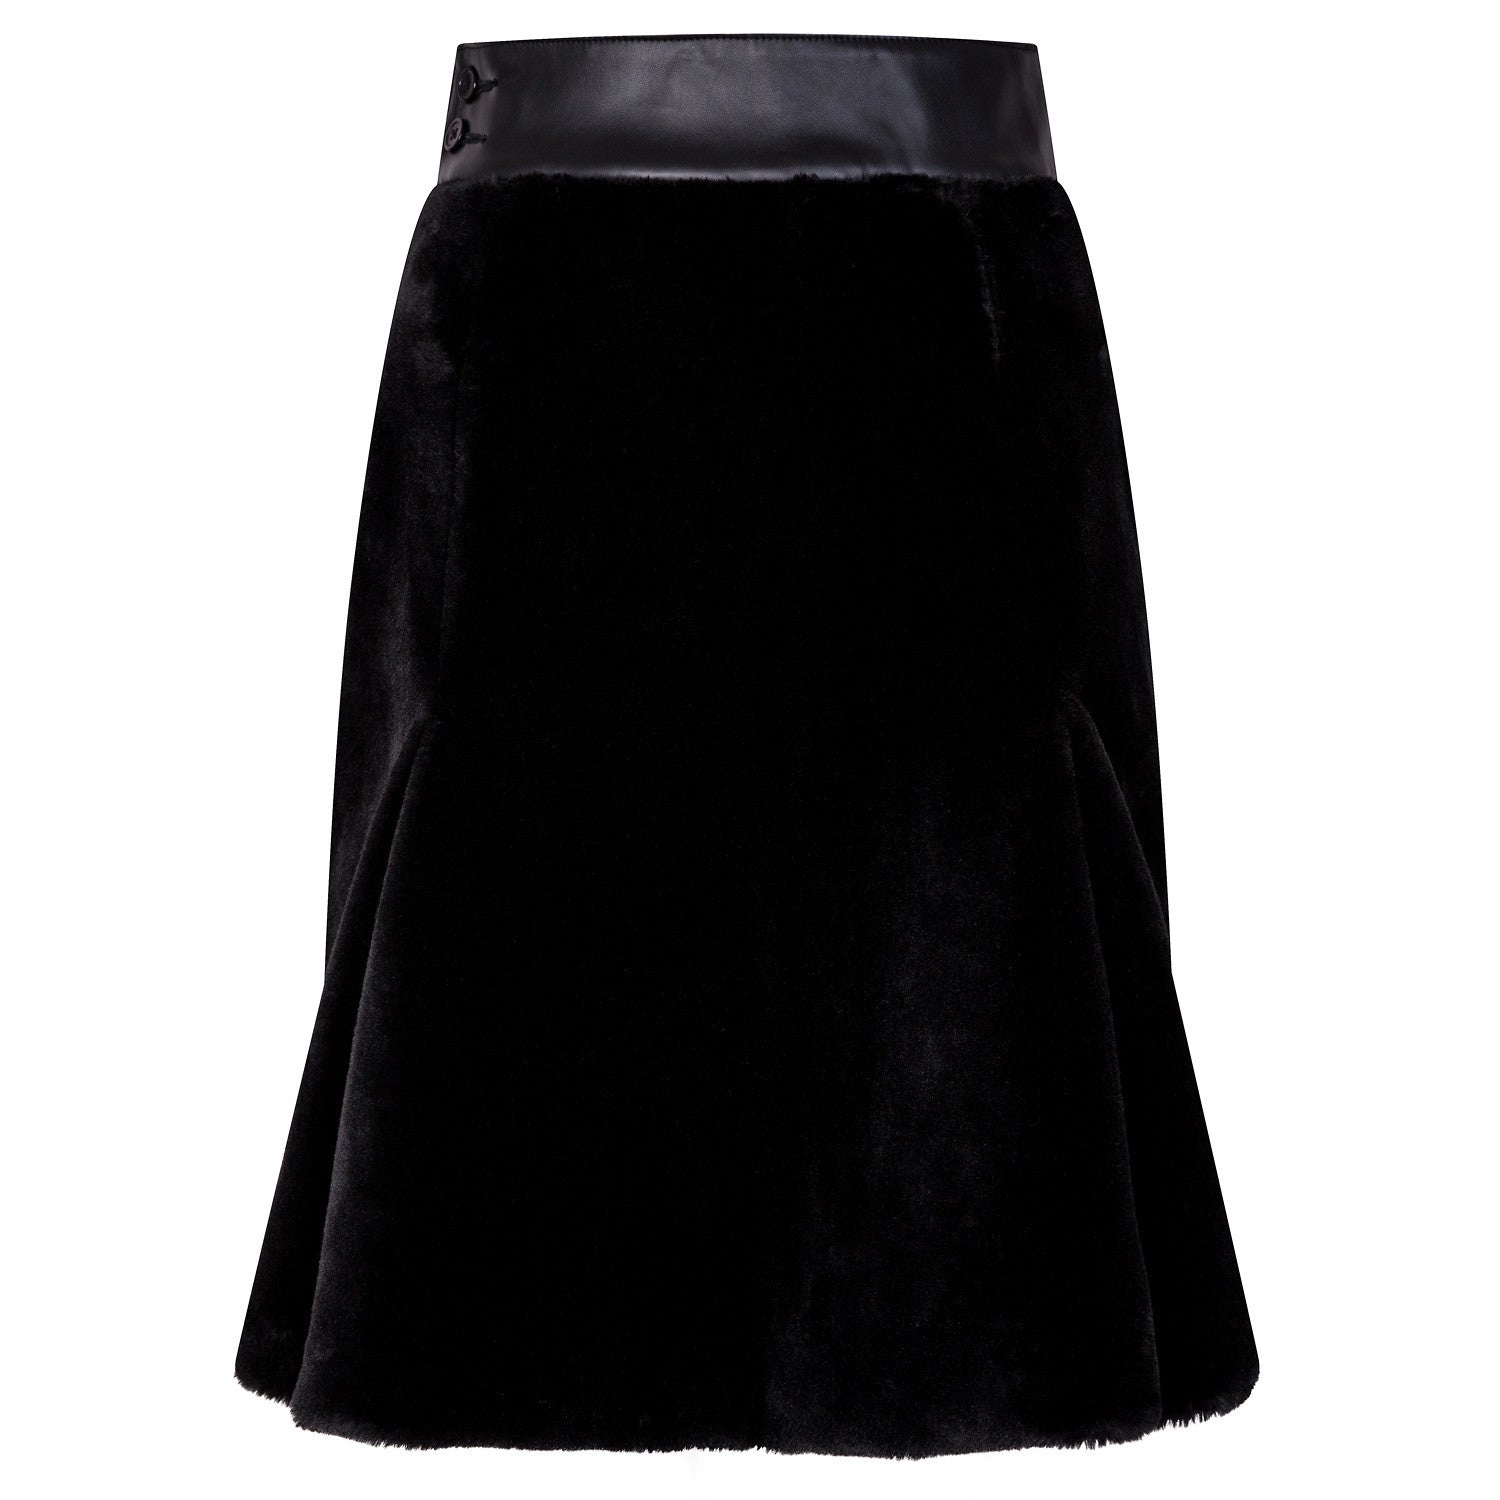 BLACK KNEE PROTECT SKIRT